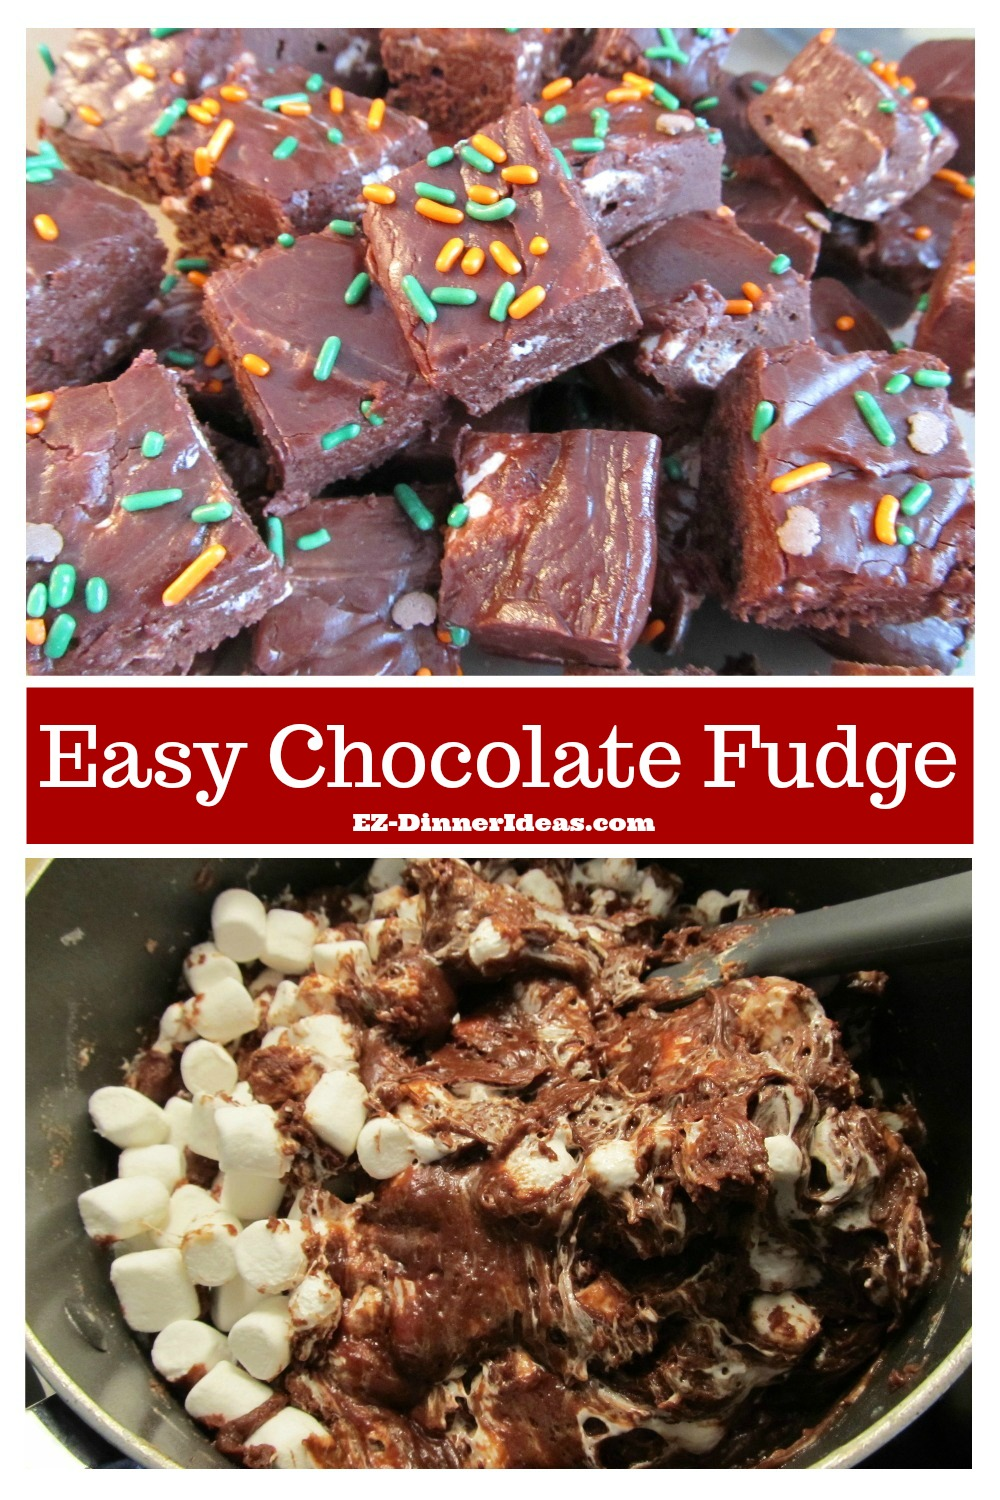 Easy Chocolate Fudge - This recipe is foolproof and no frustration with the little bit of leftover ingredients.  One recipe makes many different flavored chocolate fudge.  The options are unlimited.